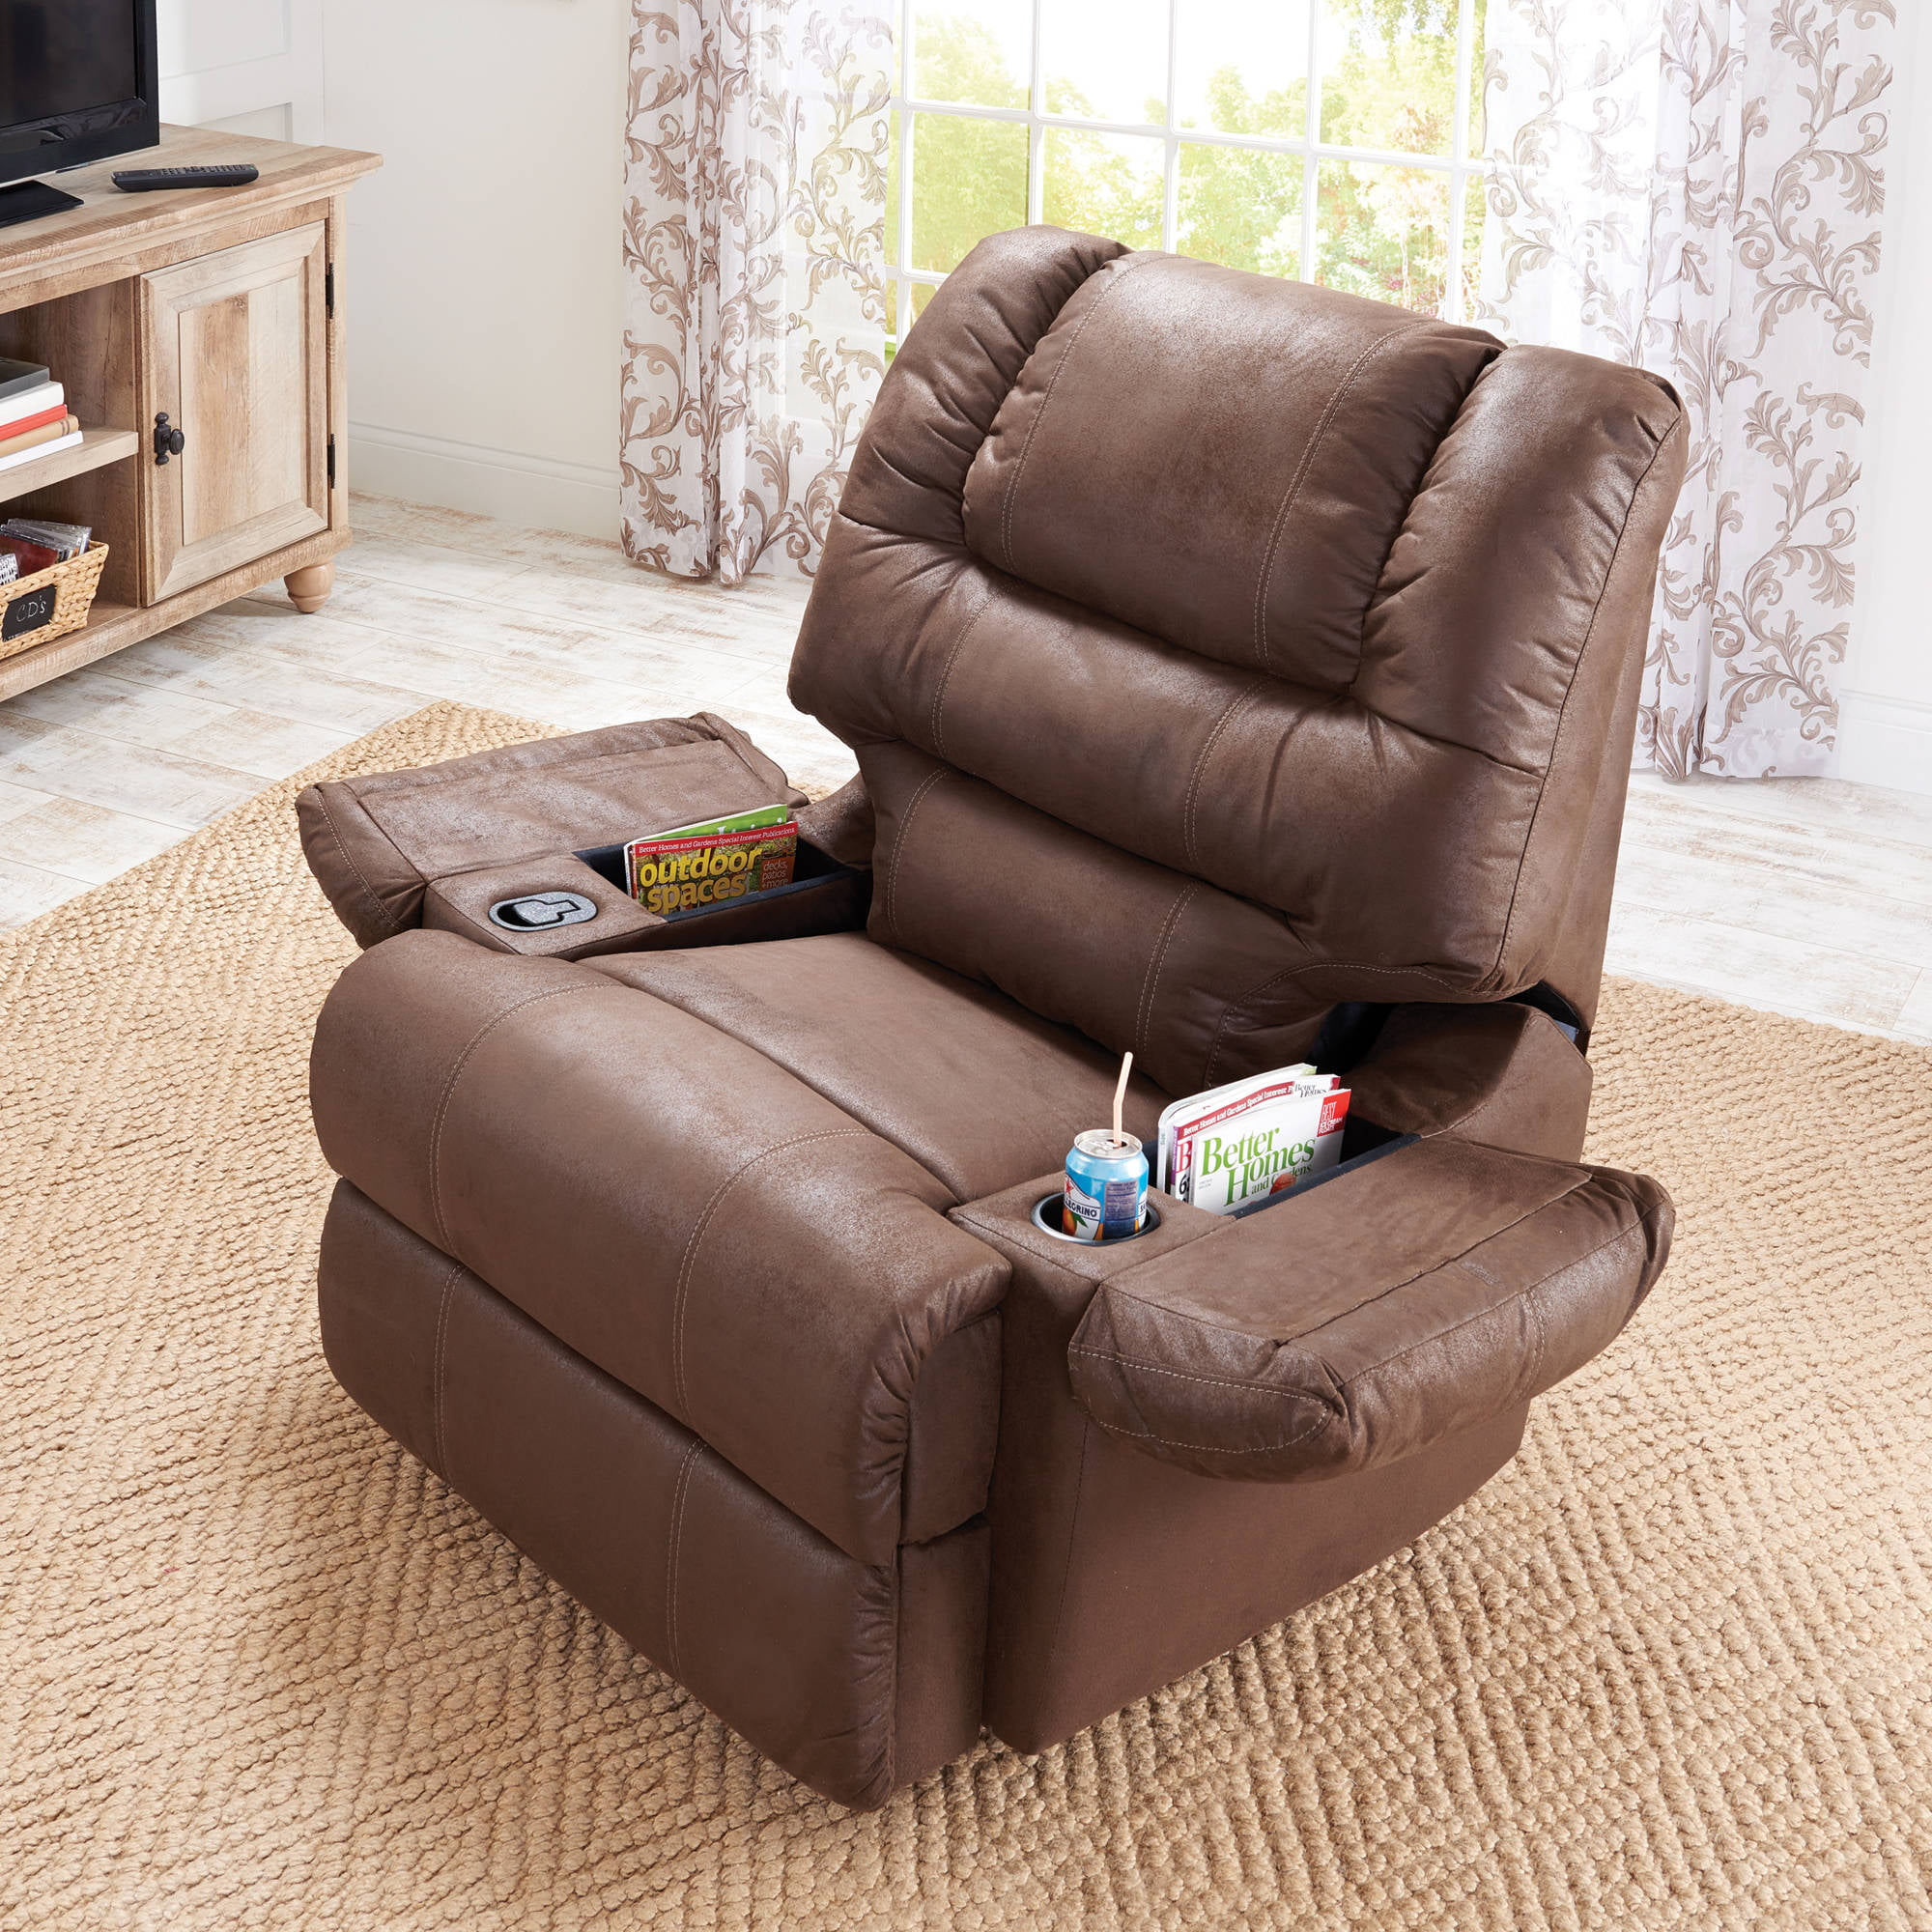 recliner covers boy cover acke lazy oversized pet double saoverd info wide february